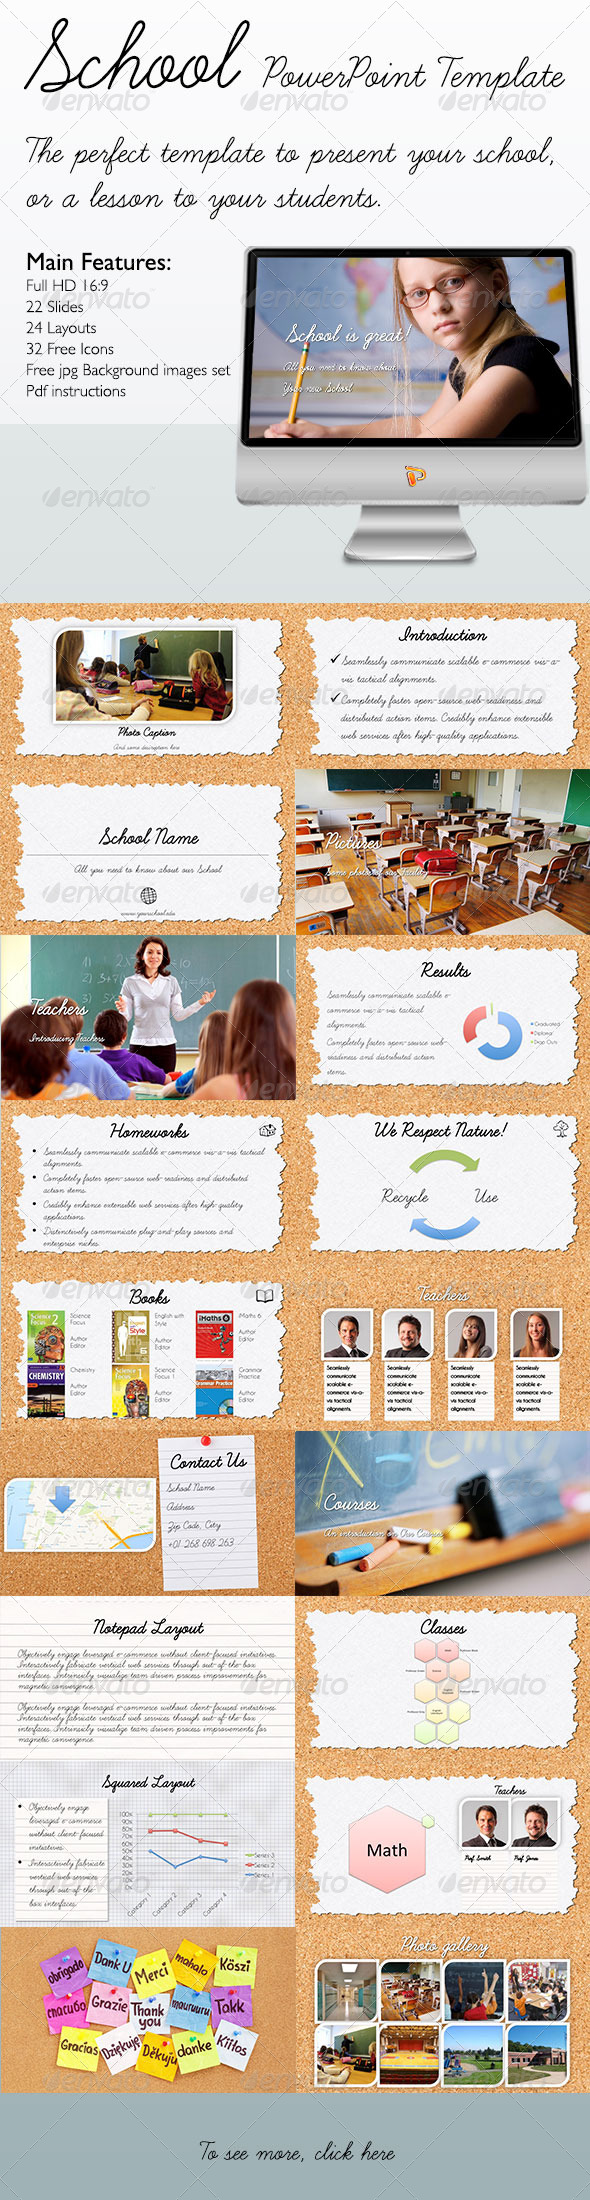 GraphicRiver School PowerPoint Template 5394546